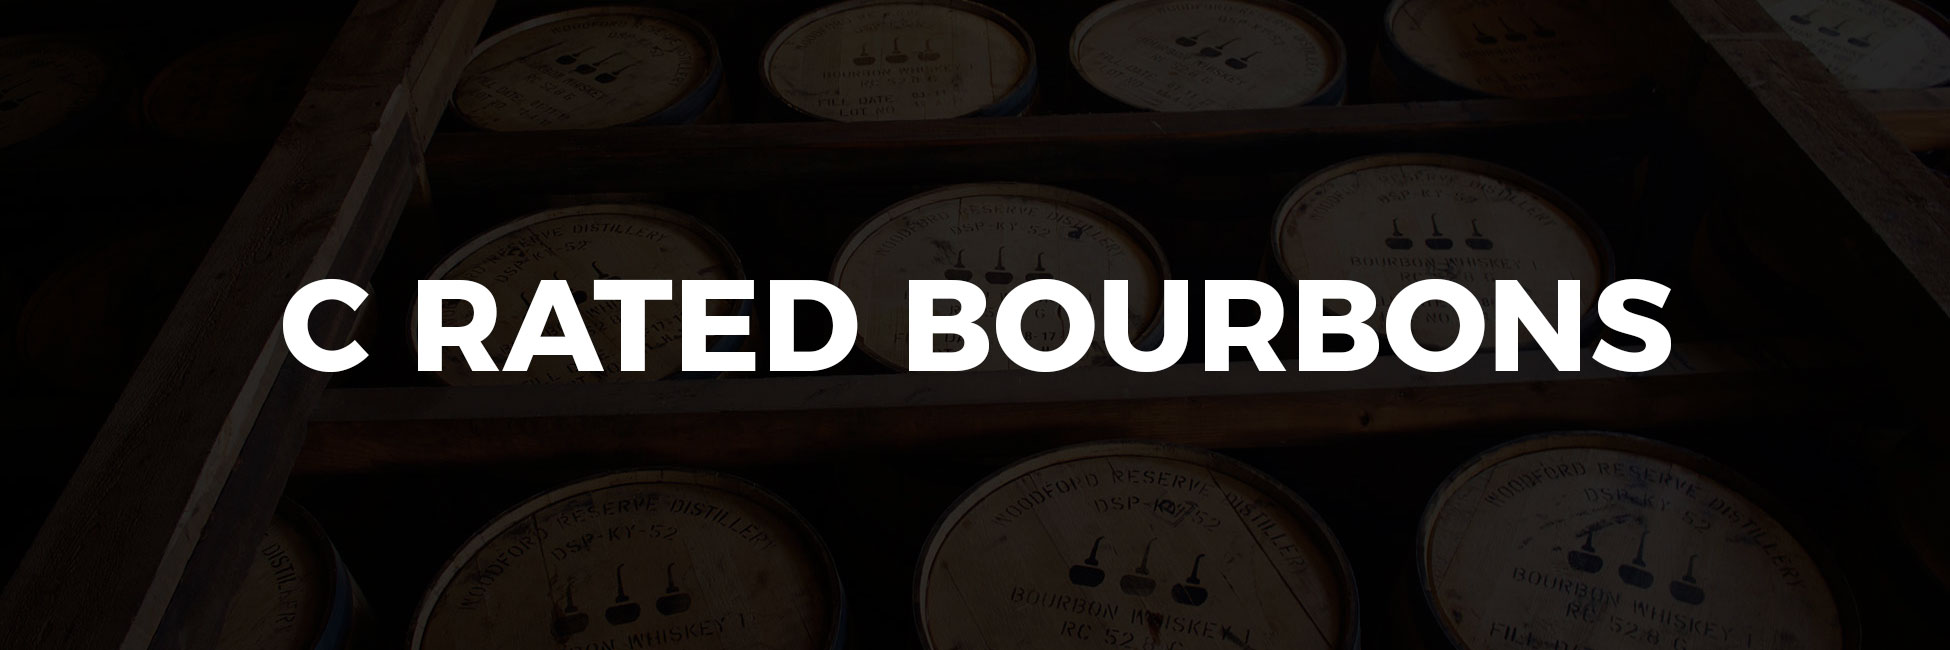 C Rated Bourbons